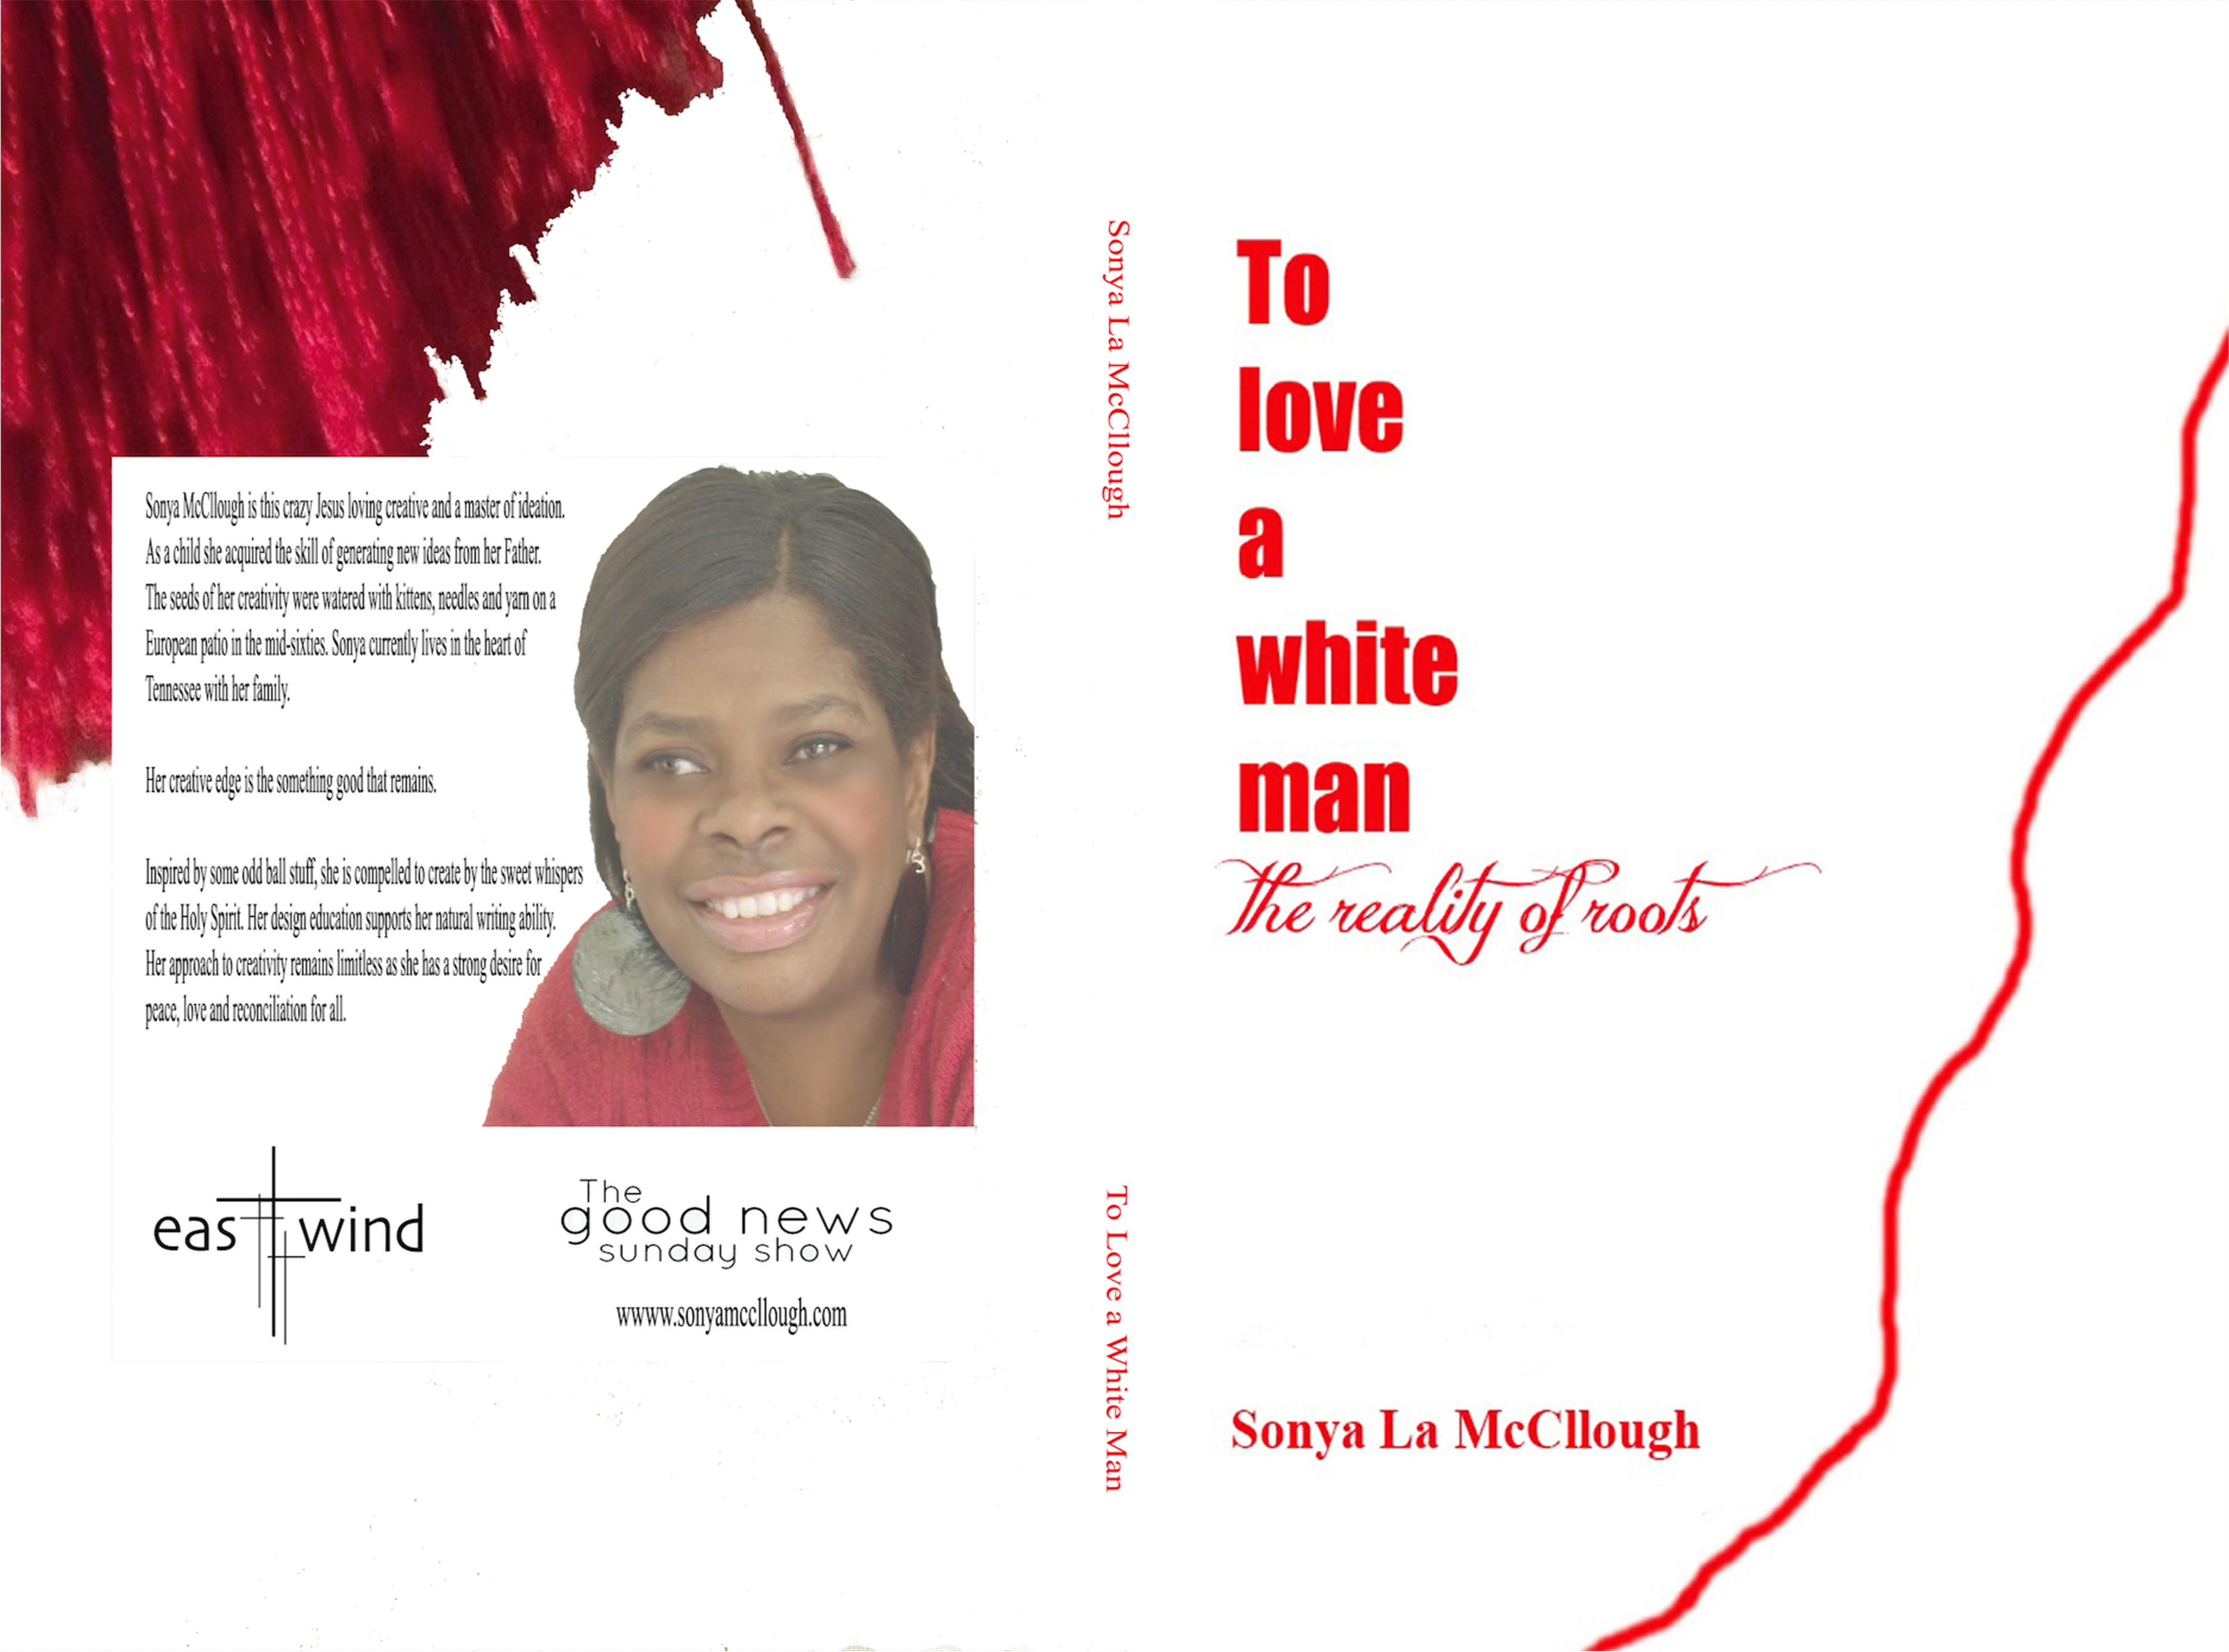 To love a white man: the reality of roots cover image